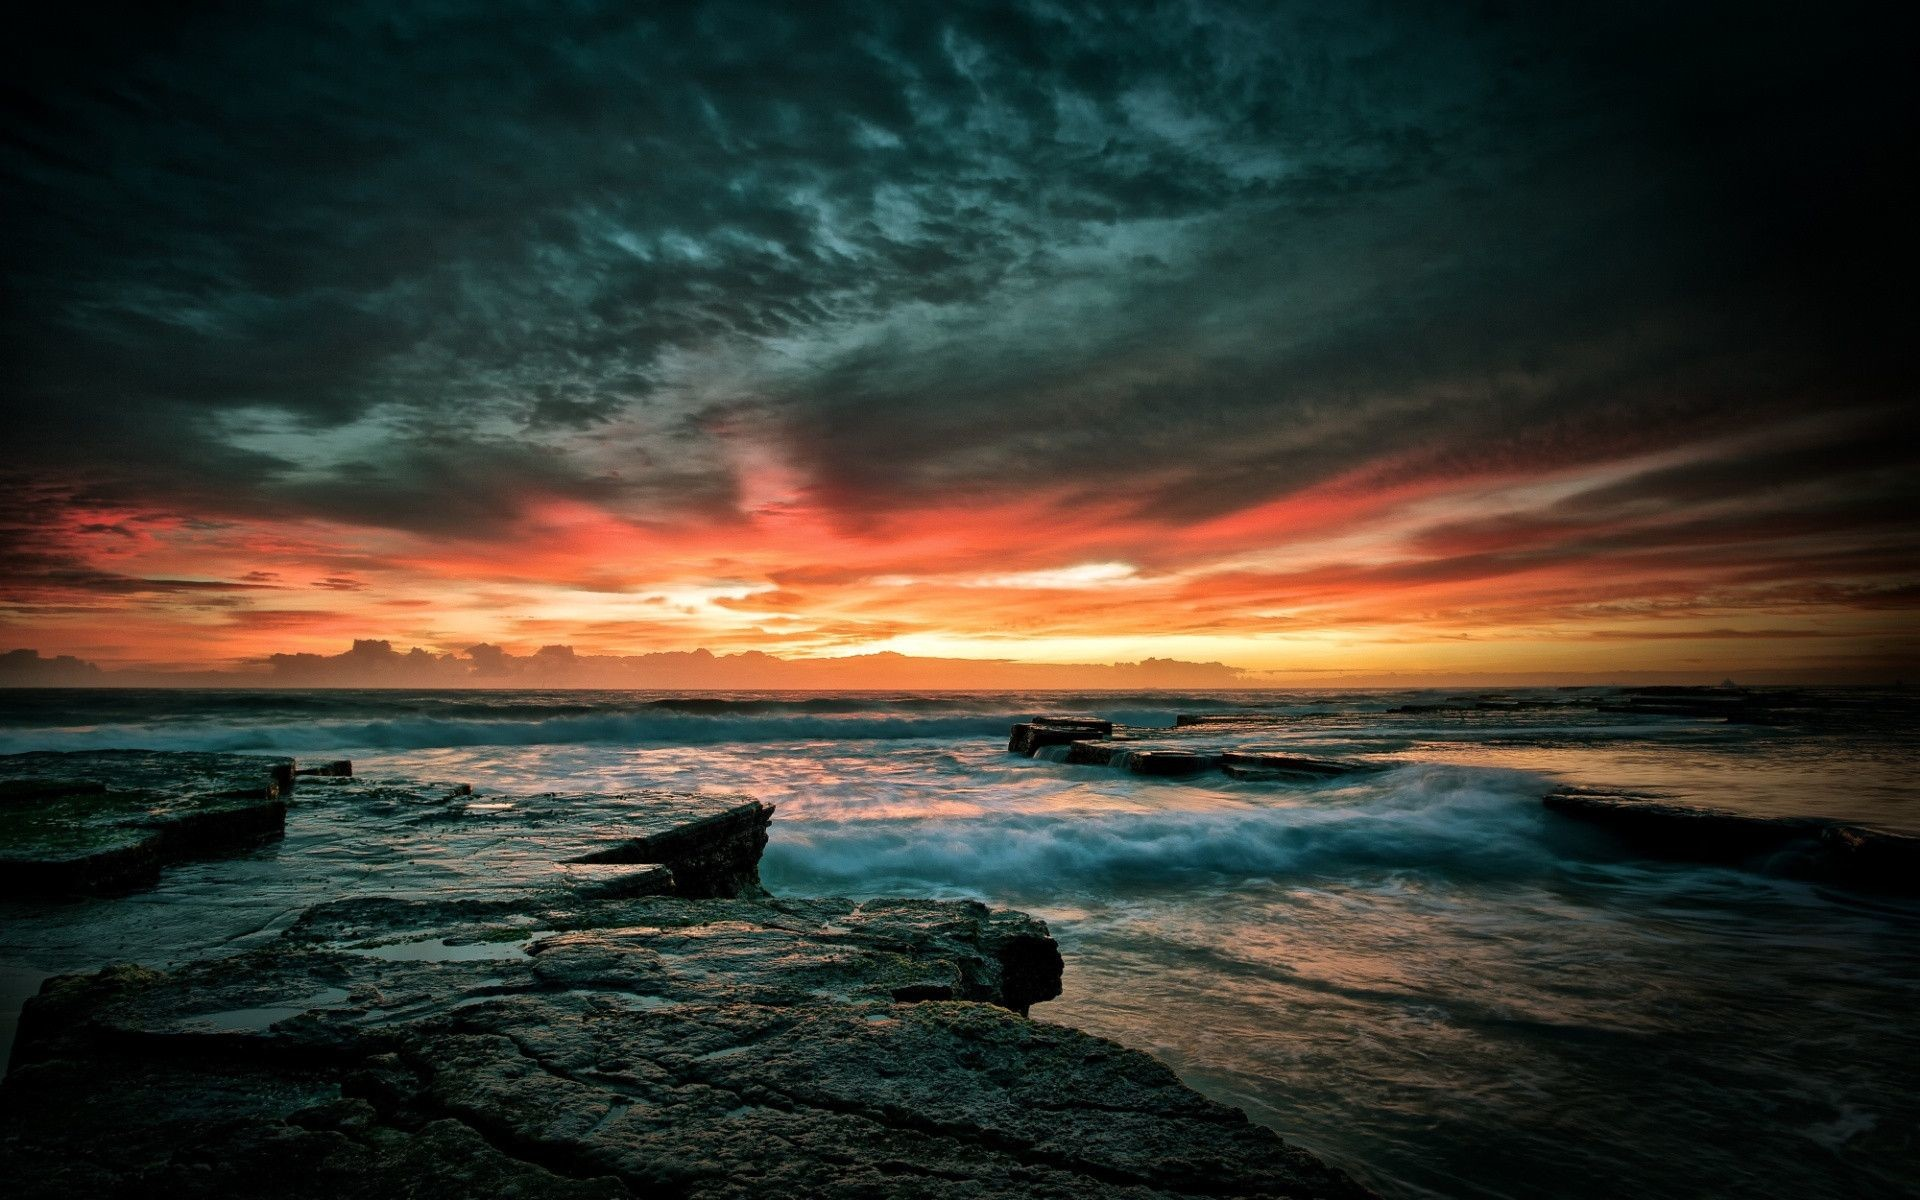 Sunset Picture wallpapers (16 Wallpapers)